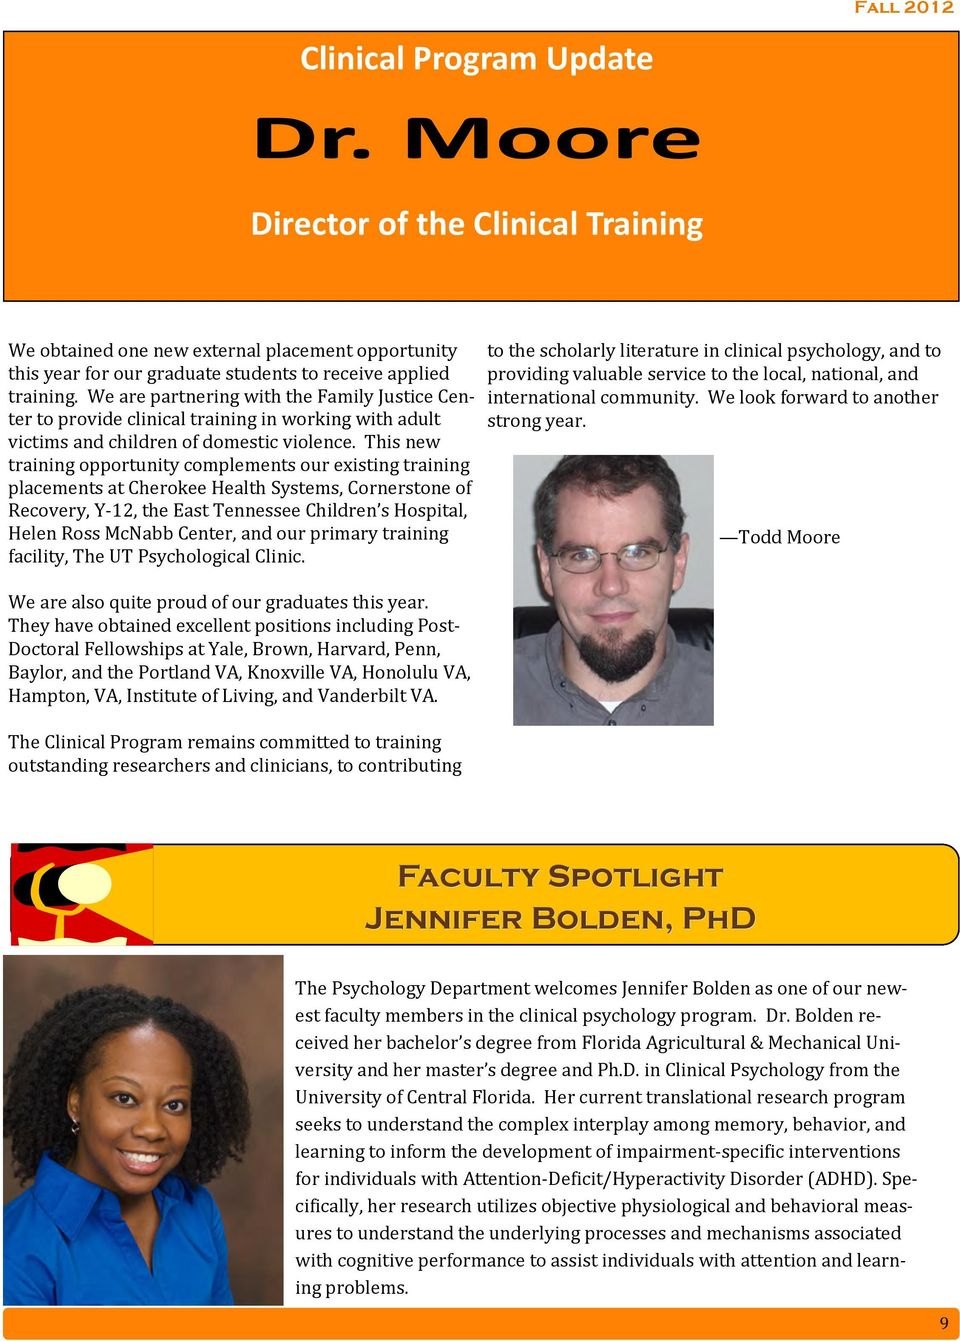 This new training opportunity complements our existing training placements at Cherokee Health Systems, Cornerstone of Recovery, Y-12, the East Tennessee Children s Hospital, Helen Ross McNabb Center,